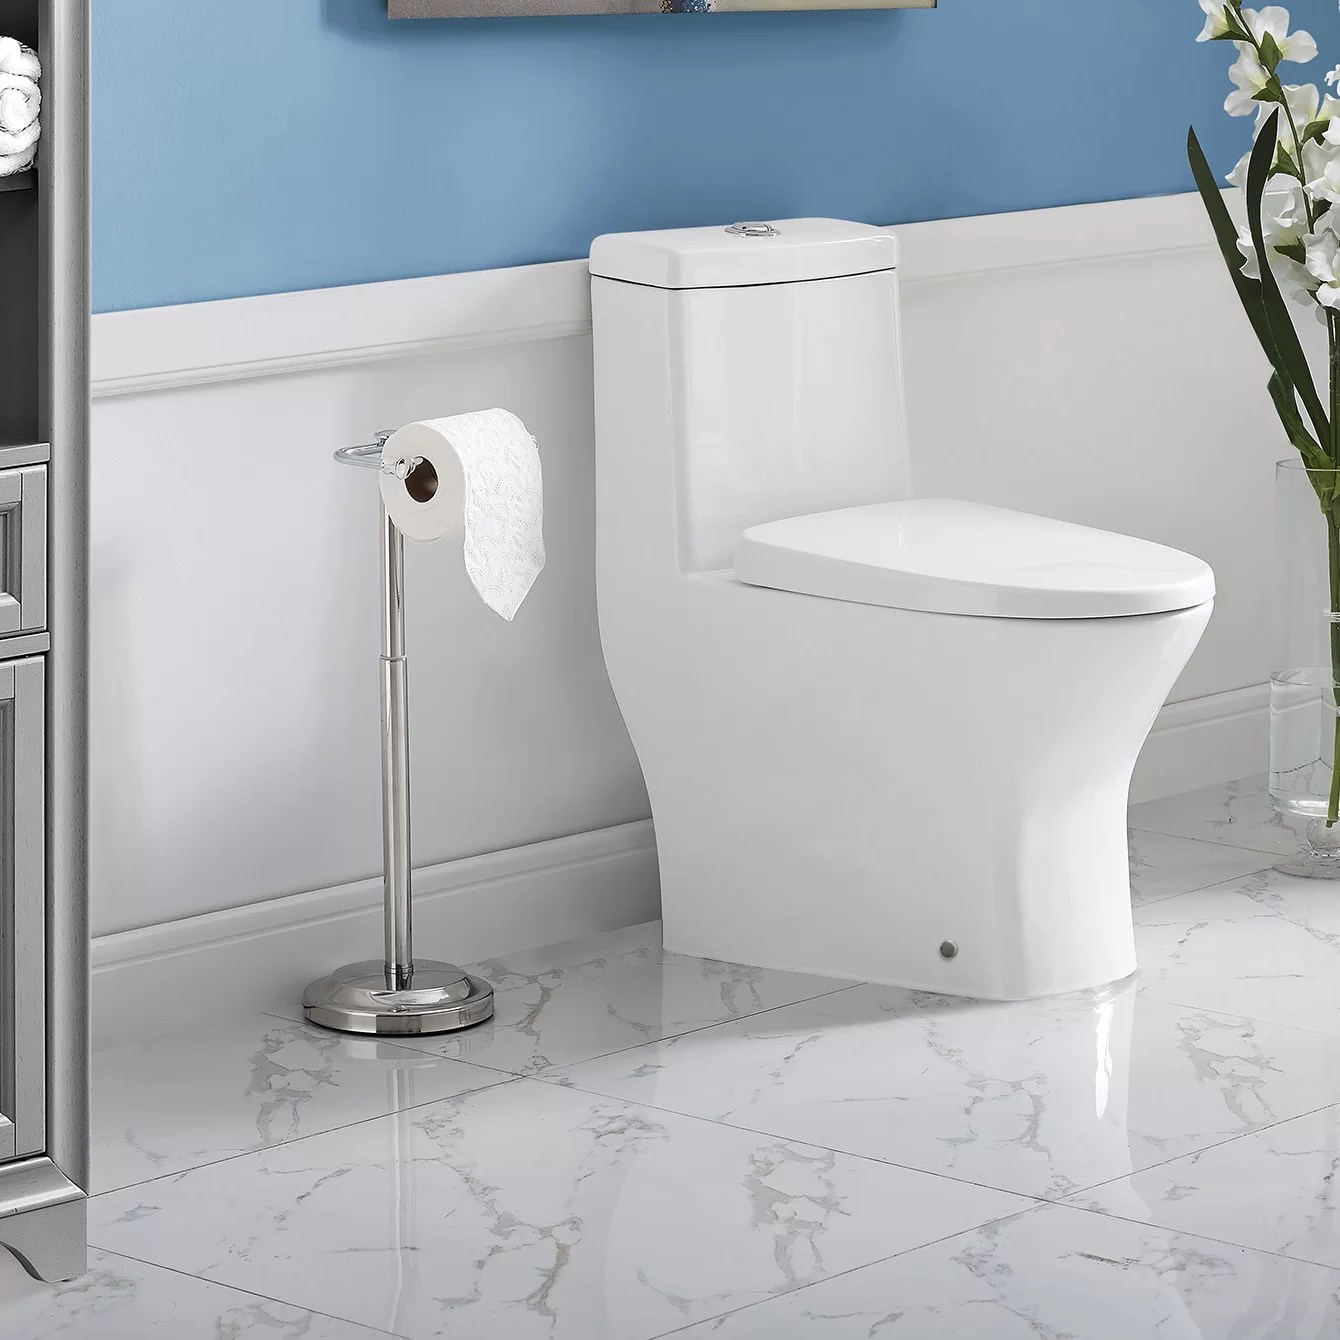 10 Inch Rough In Toilet Canada Sublime Ii Compact Dual Flush Long Floor Mount Toilet With Side Holes Seat Included